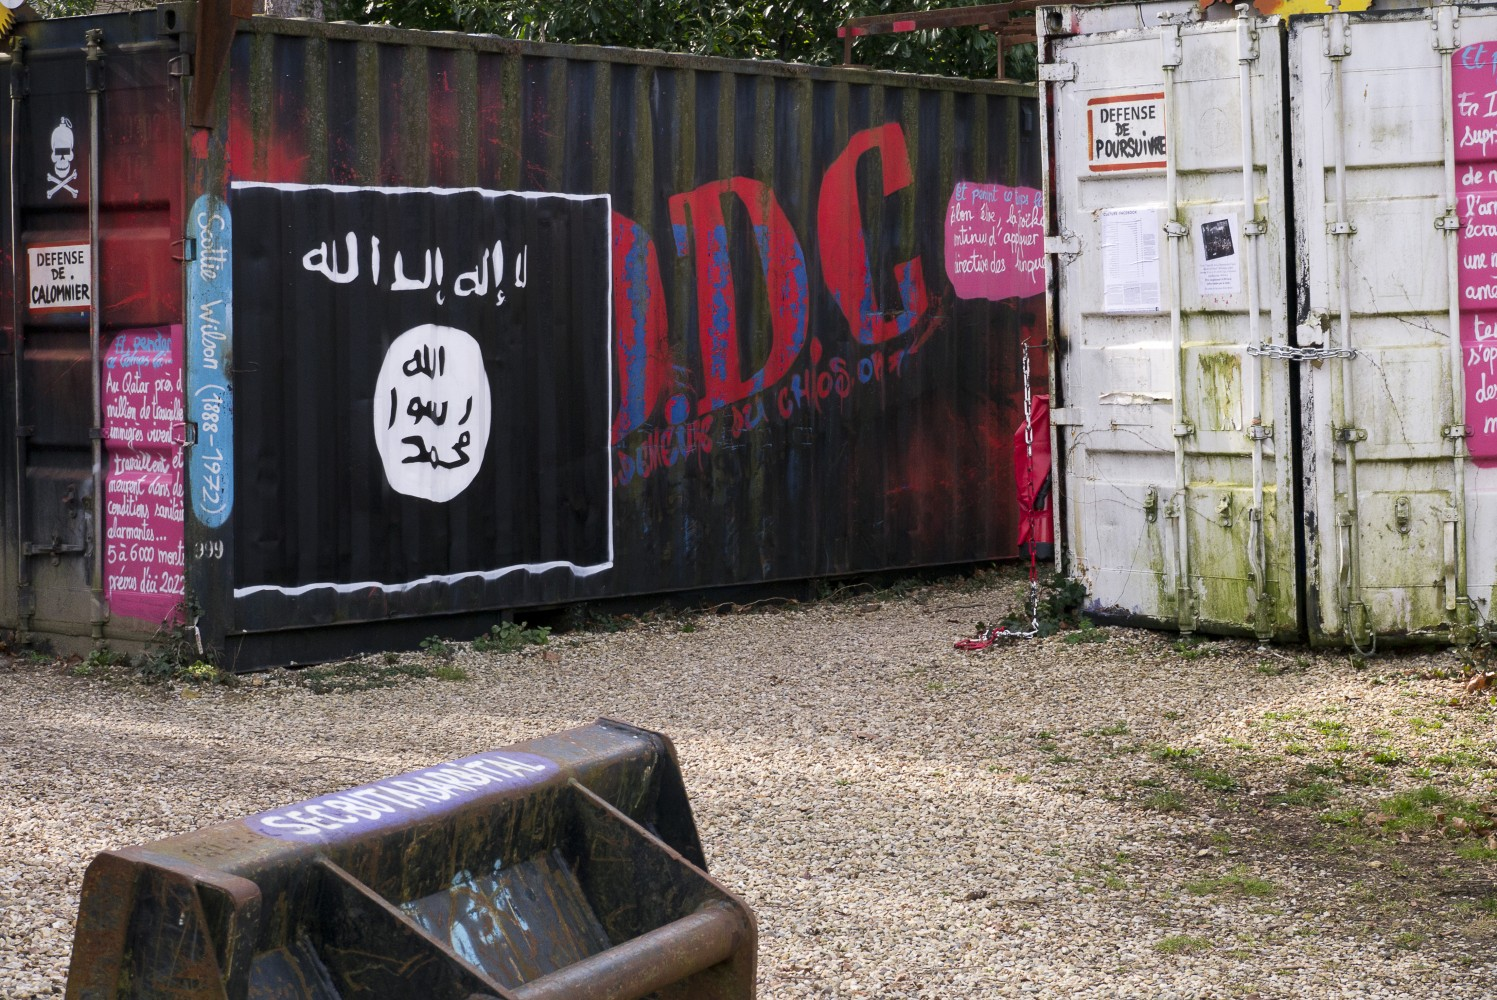 An Daesh poster adorns a shipping container in Syria. Copyright Thierry Ehrmann 2015.